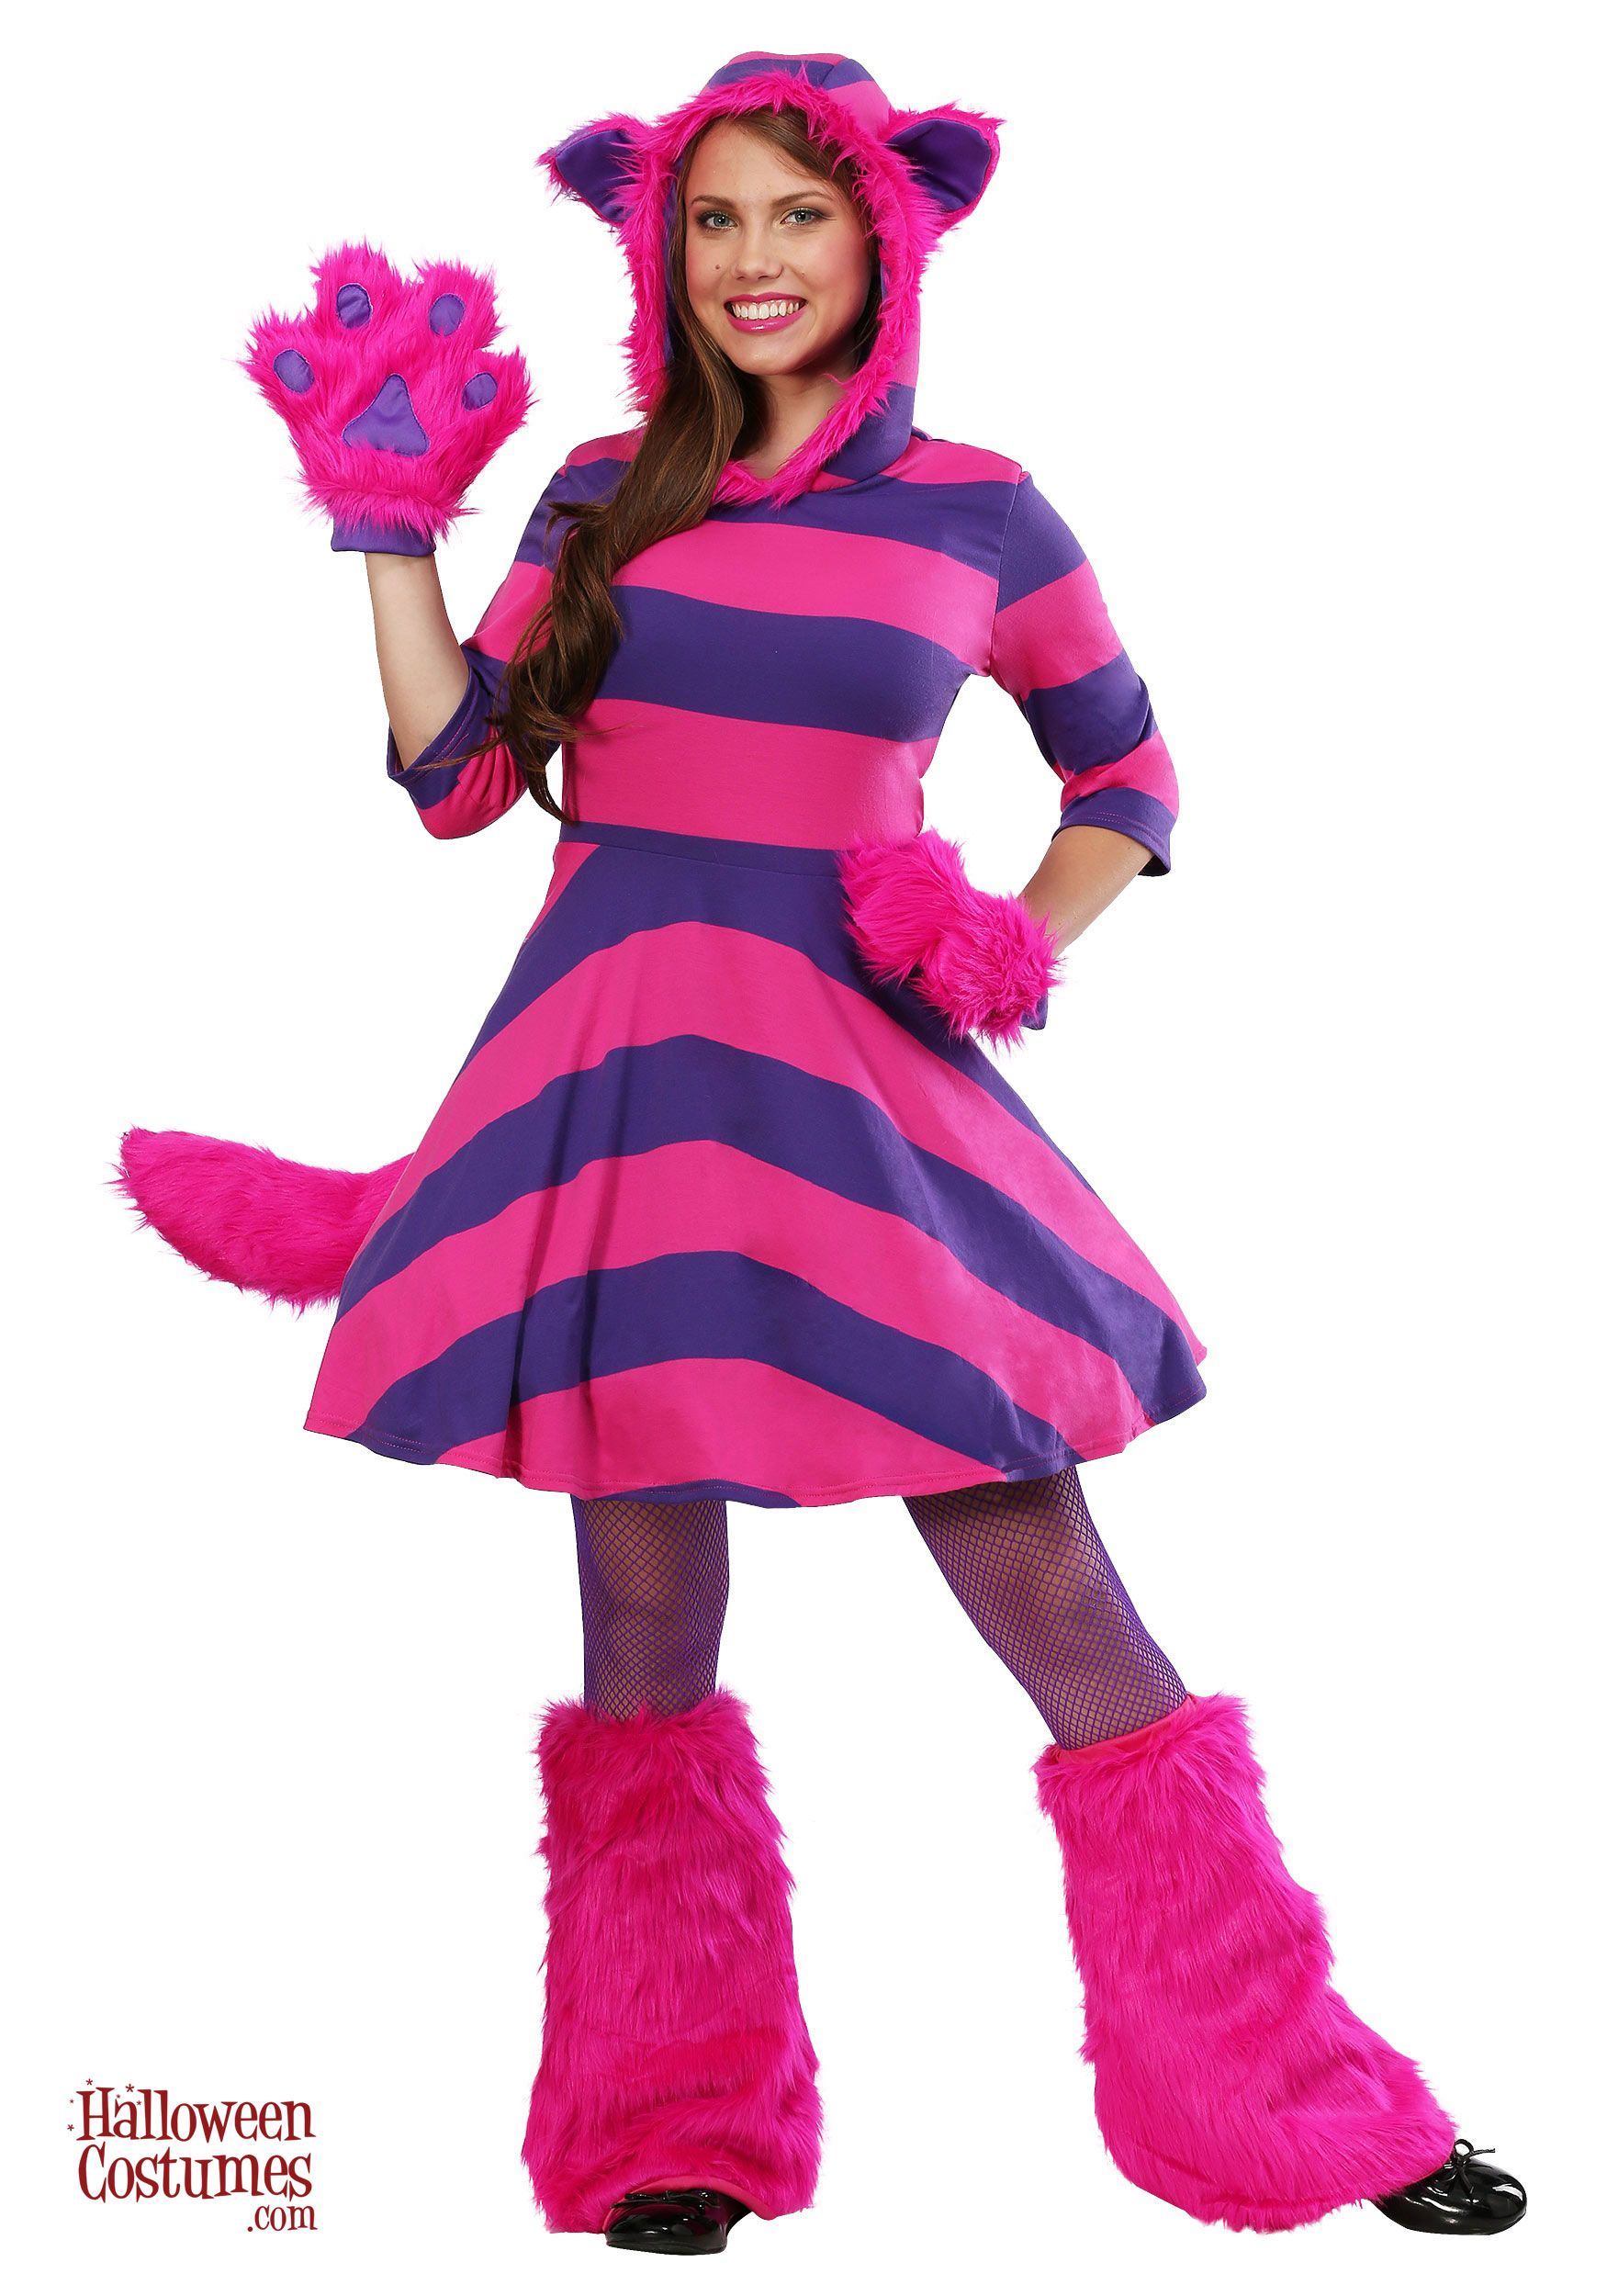 Cheshire Cat Womenu0027s Costume - Exclusive  sc 1 st  Pinterest & Cheshire Cat Womenu0027s Costume - Exclusive | Costumes | Pinterest ...